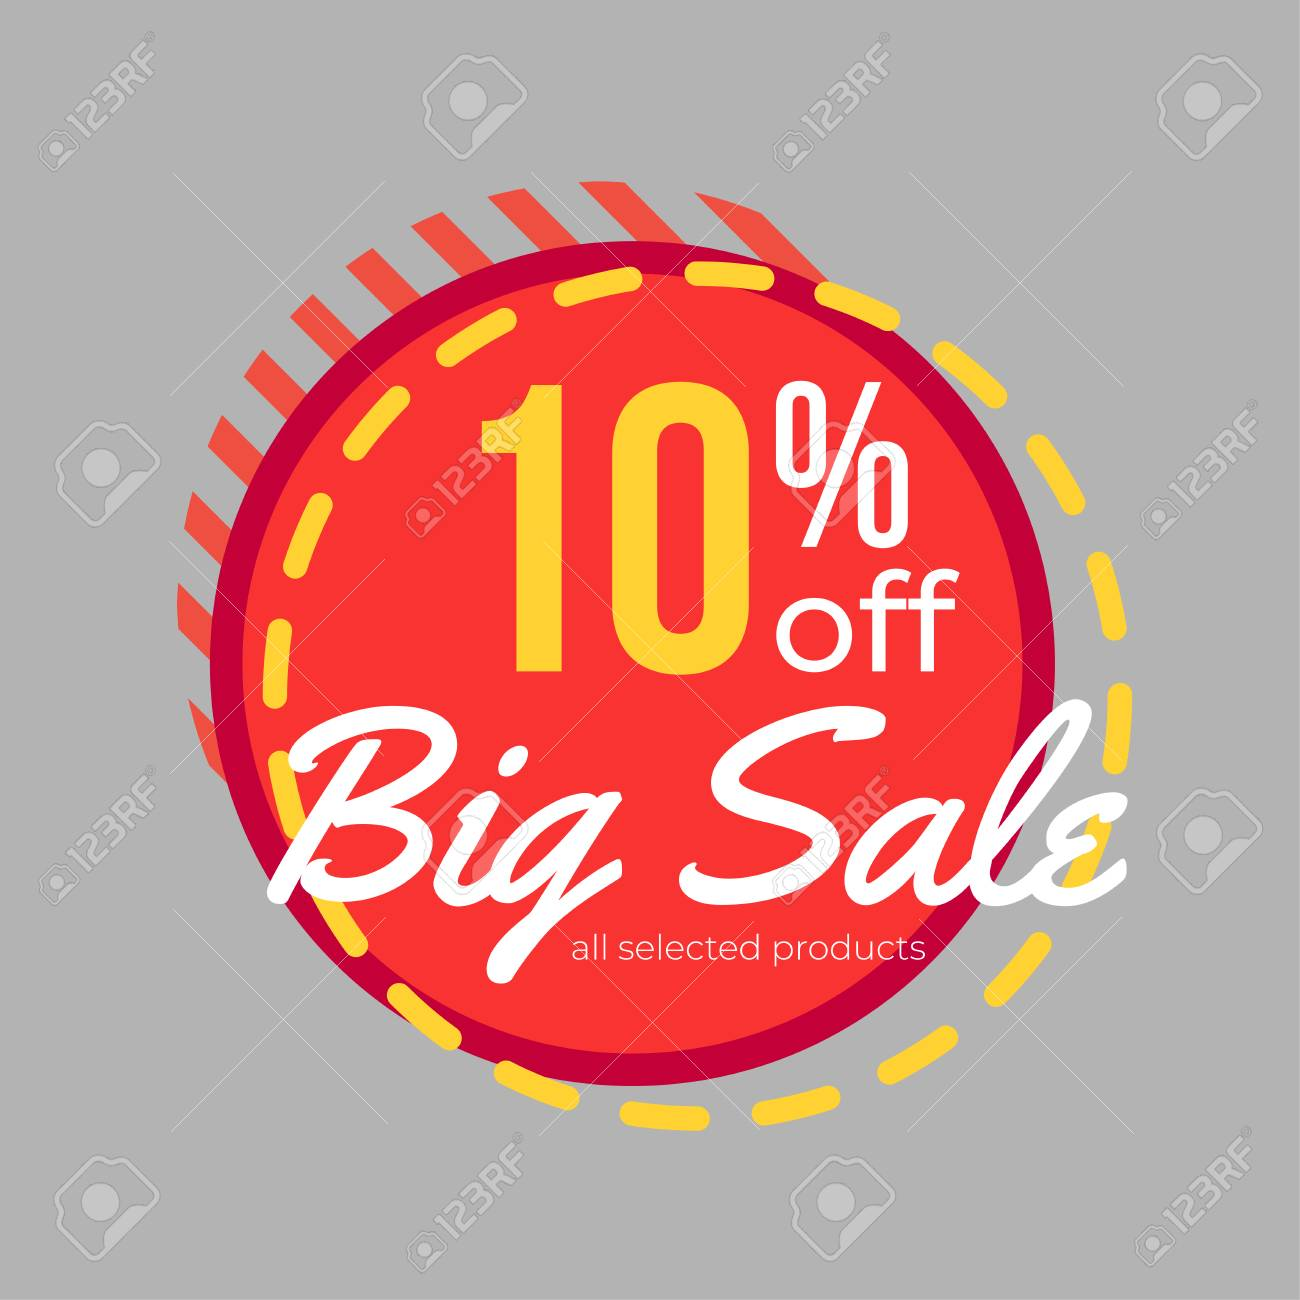 a74f4c5a8 10% discount big sale banner template design for poster, flyer, shop, online